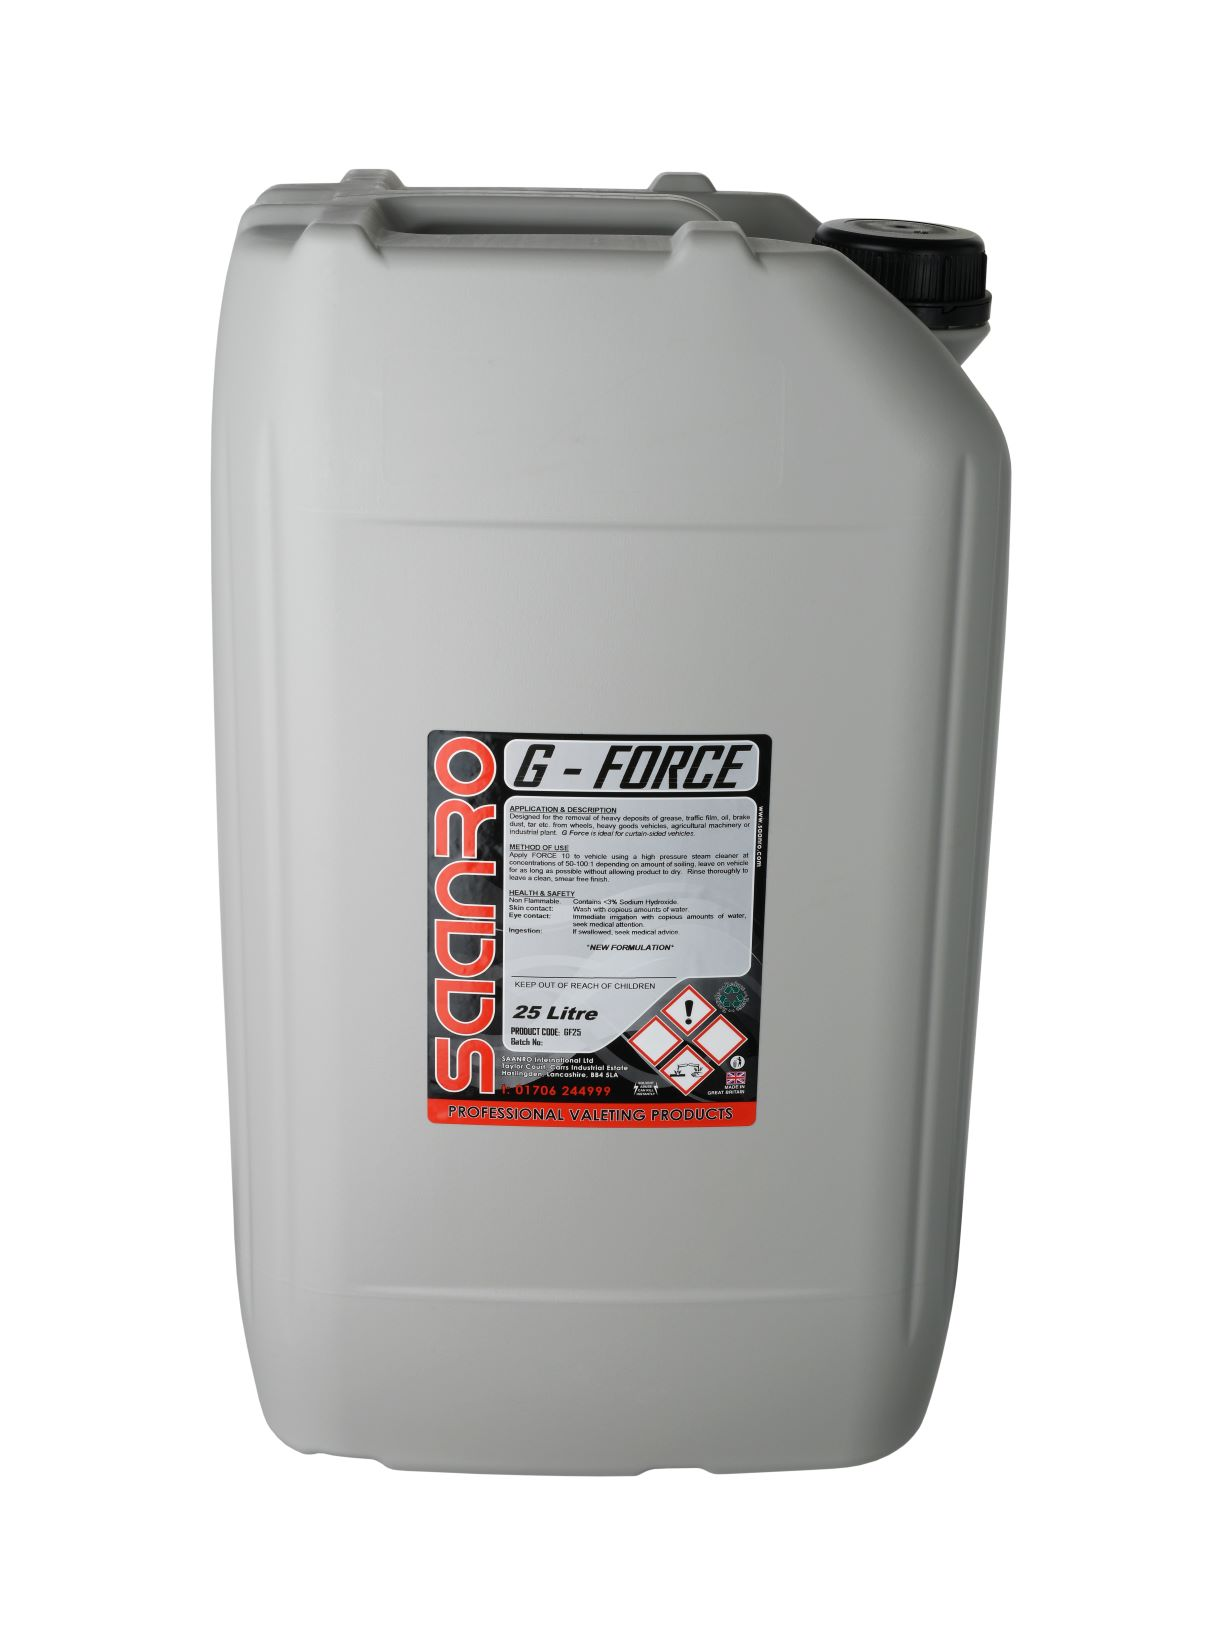 Saanro G-Force 25 Litre